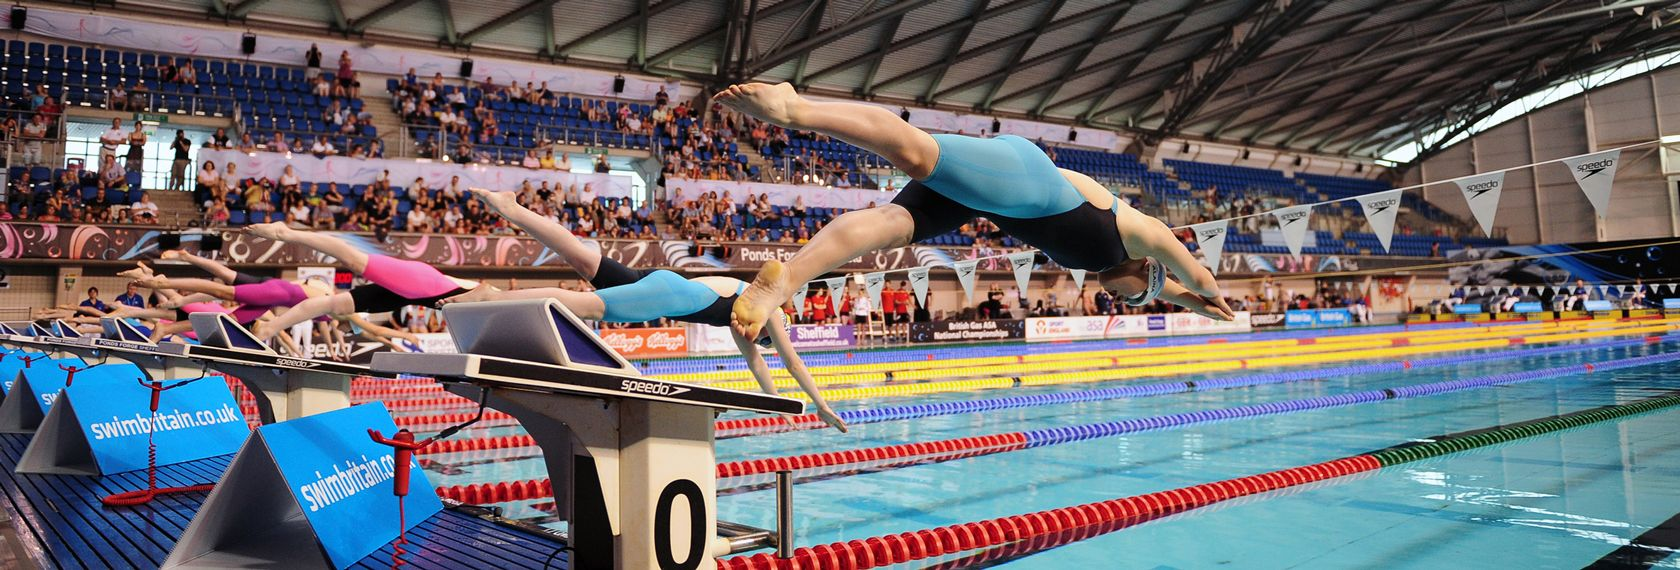 ponds_forge_diving_in_gv.jpg